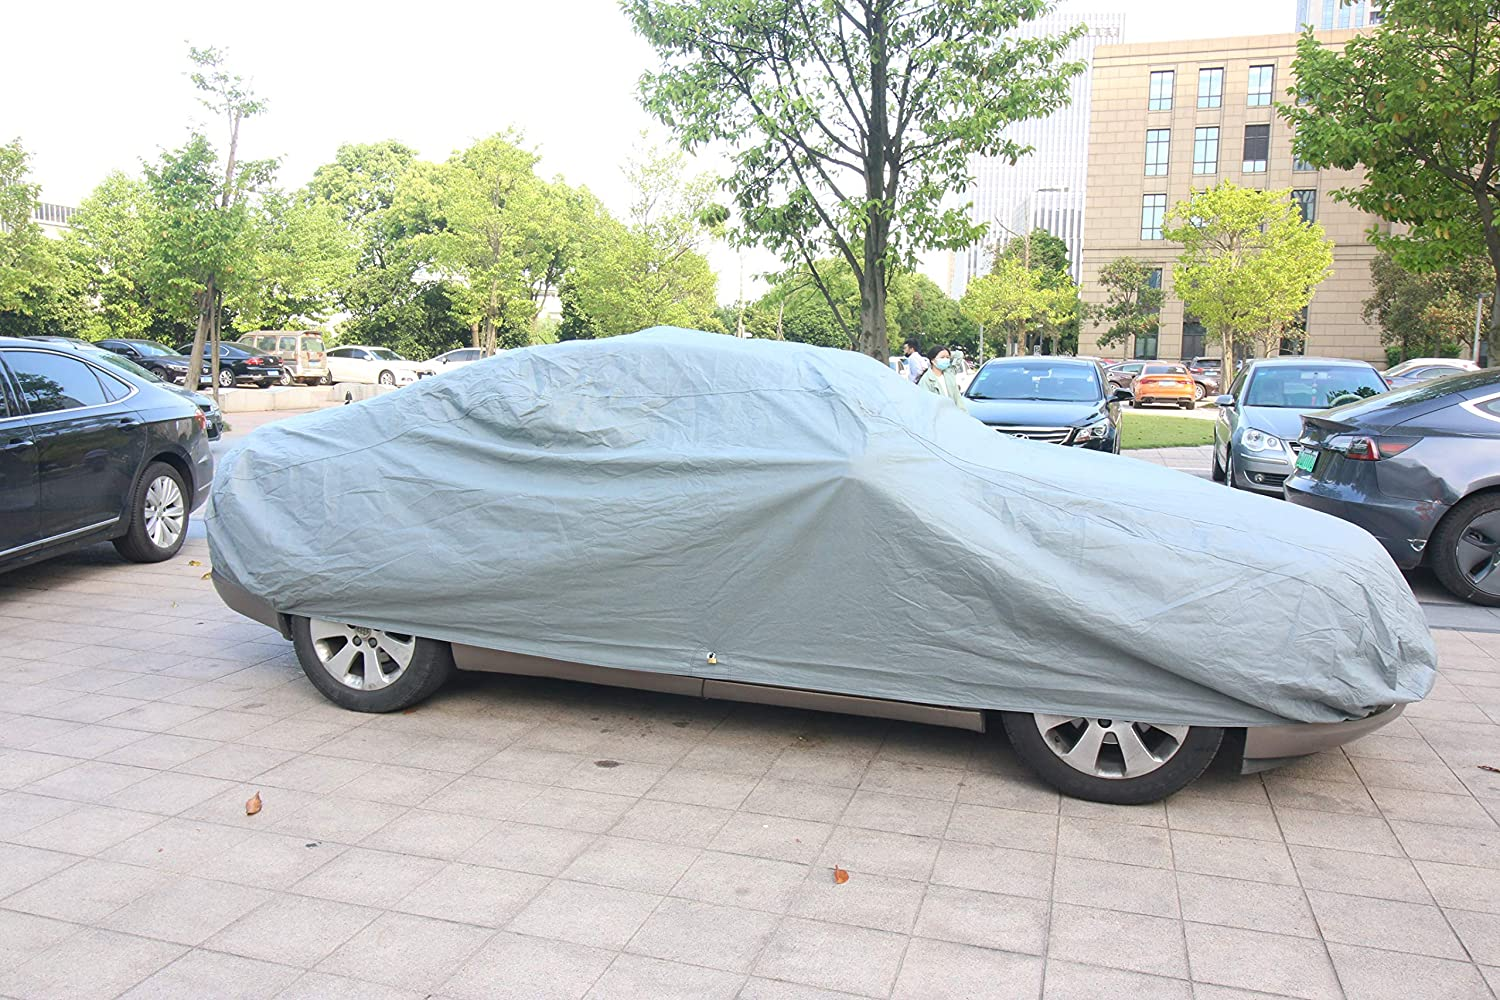 M Size up to 160 Copap Car Covers PVC and Non-Woven Fabric Sedan Cover Dust Prevention UV Proof Indoor Outdoor All Weather Waterproof